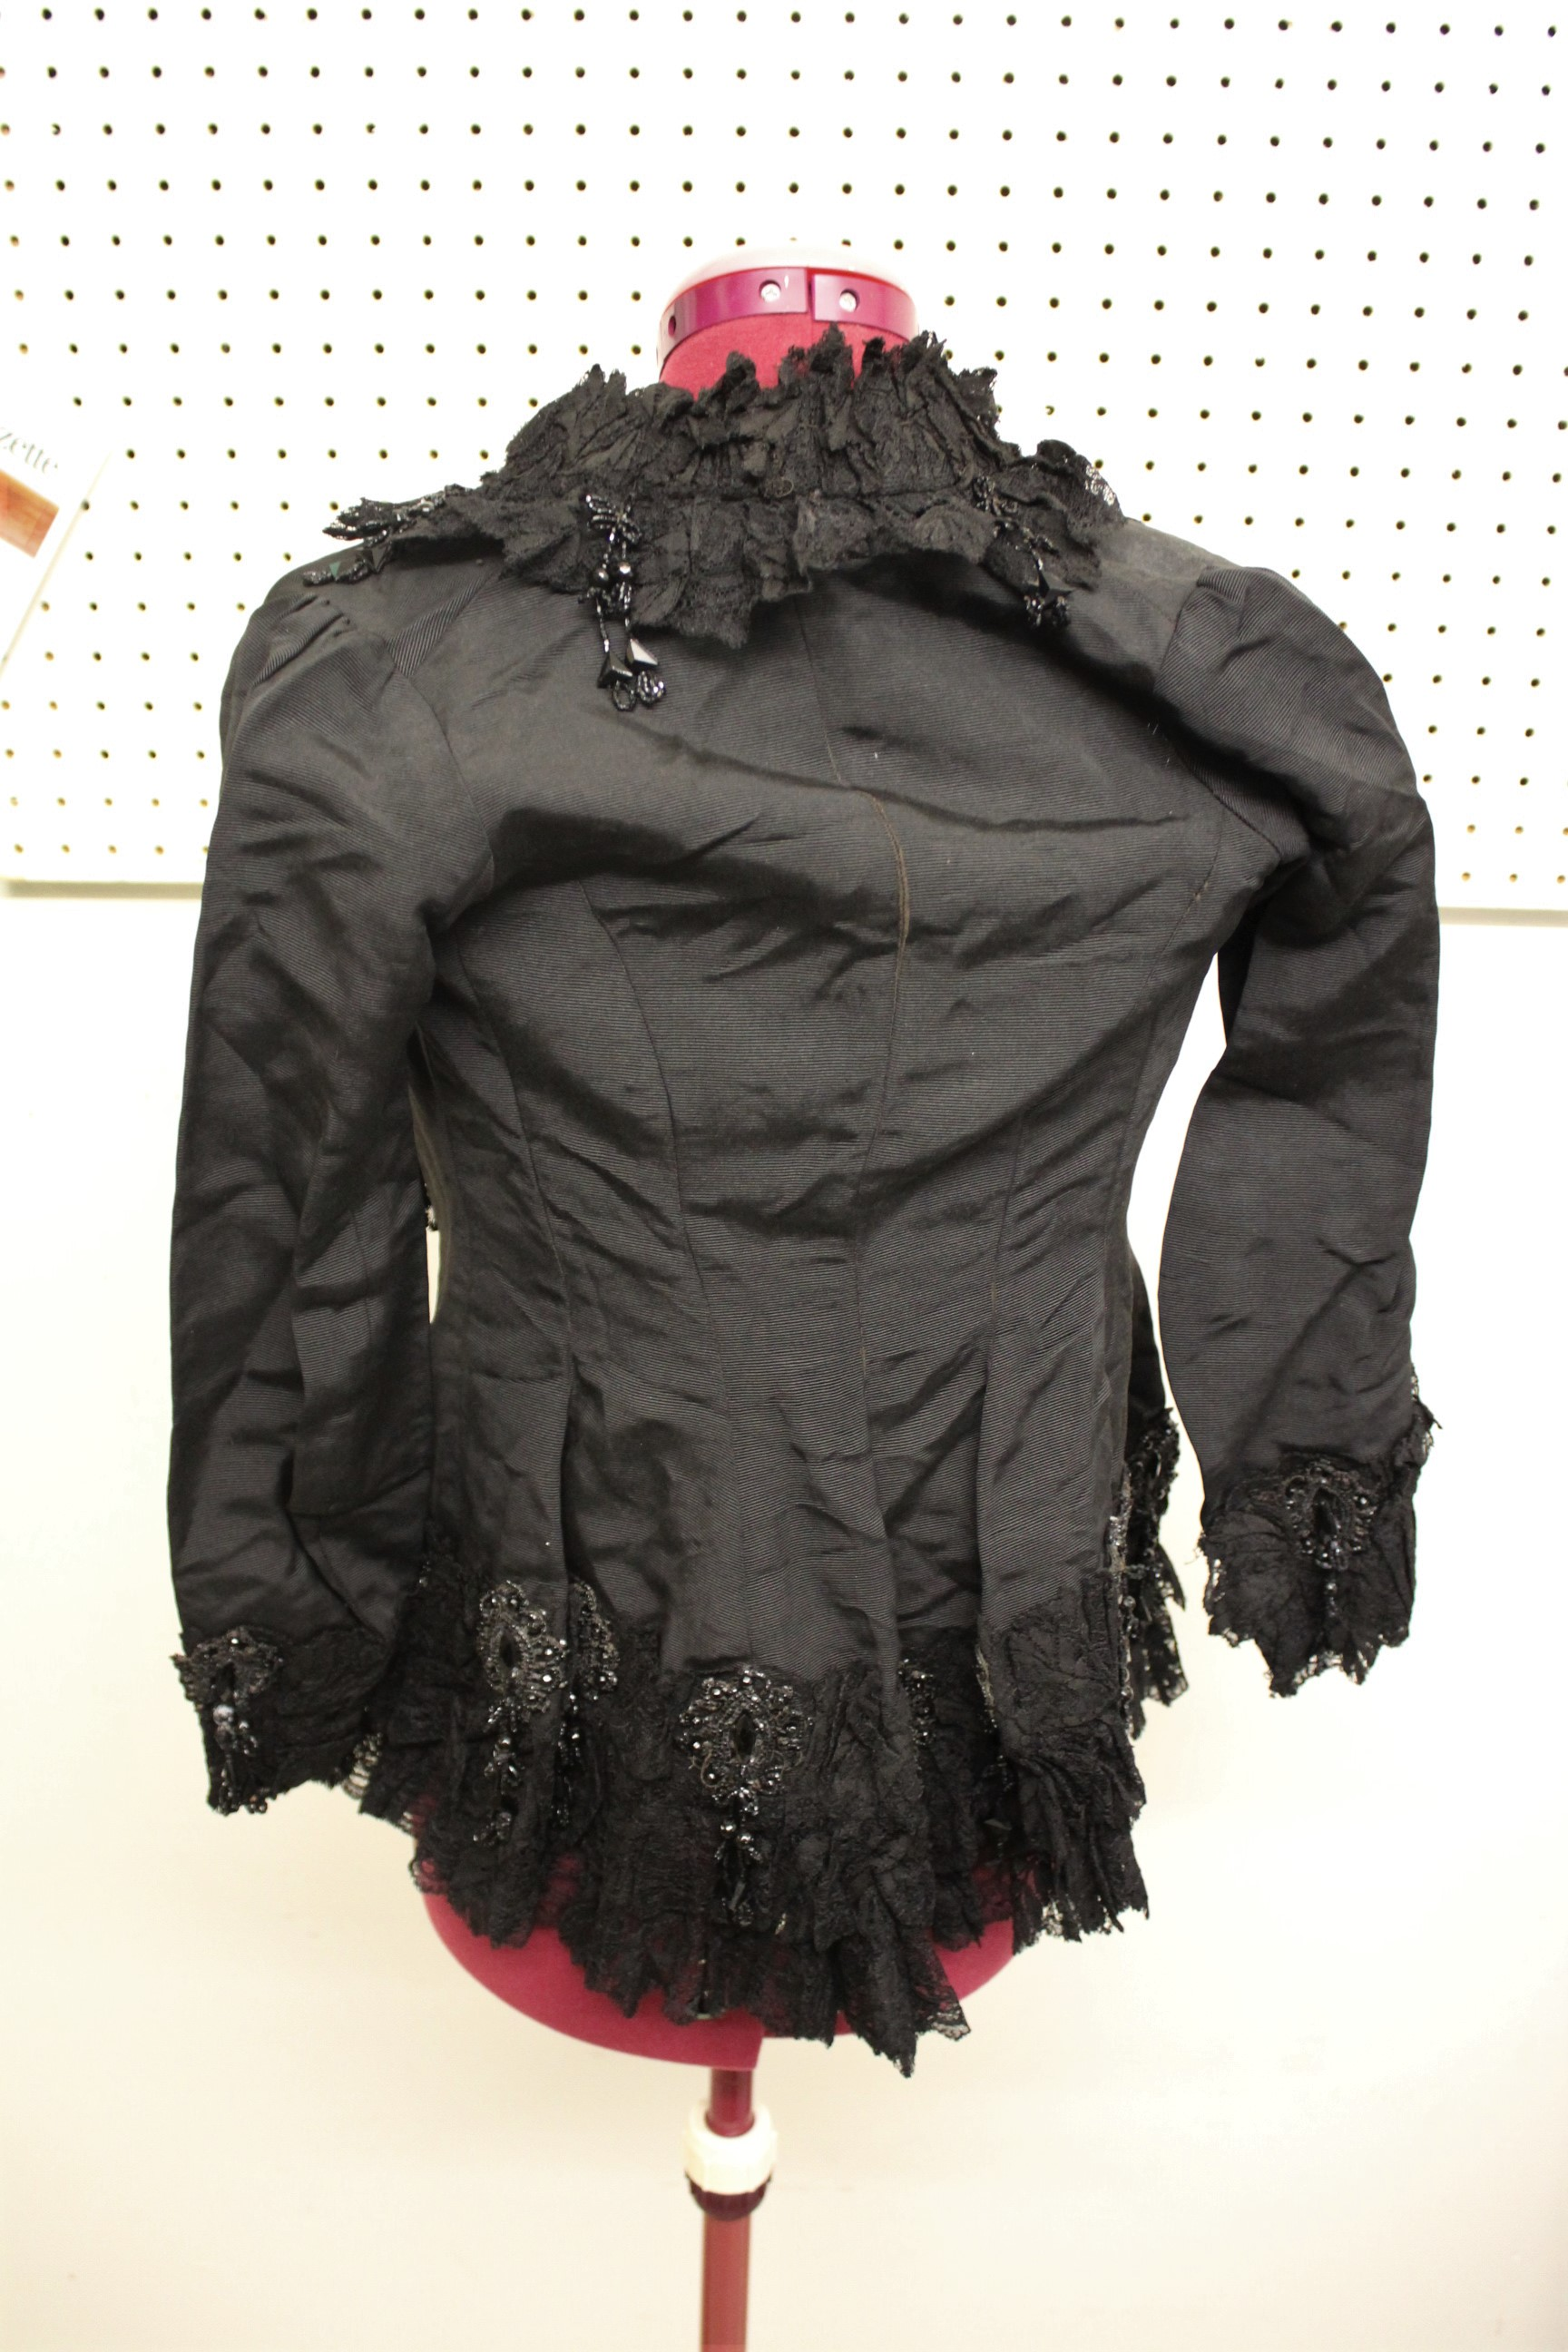 19THC JACKET a black grosgrain jacket embellished with lace and bead embroidered motifs, by Cole - Image 4 of 5